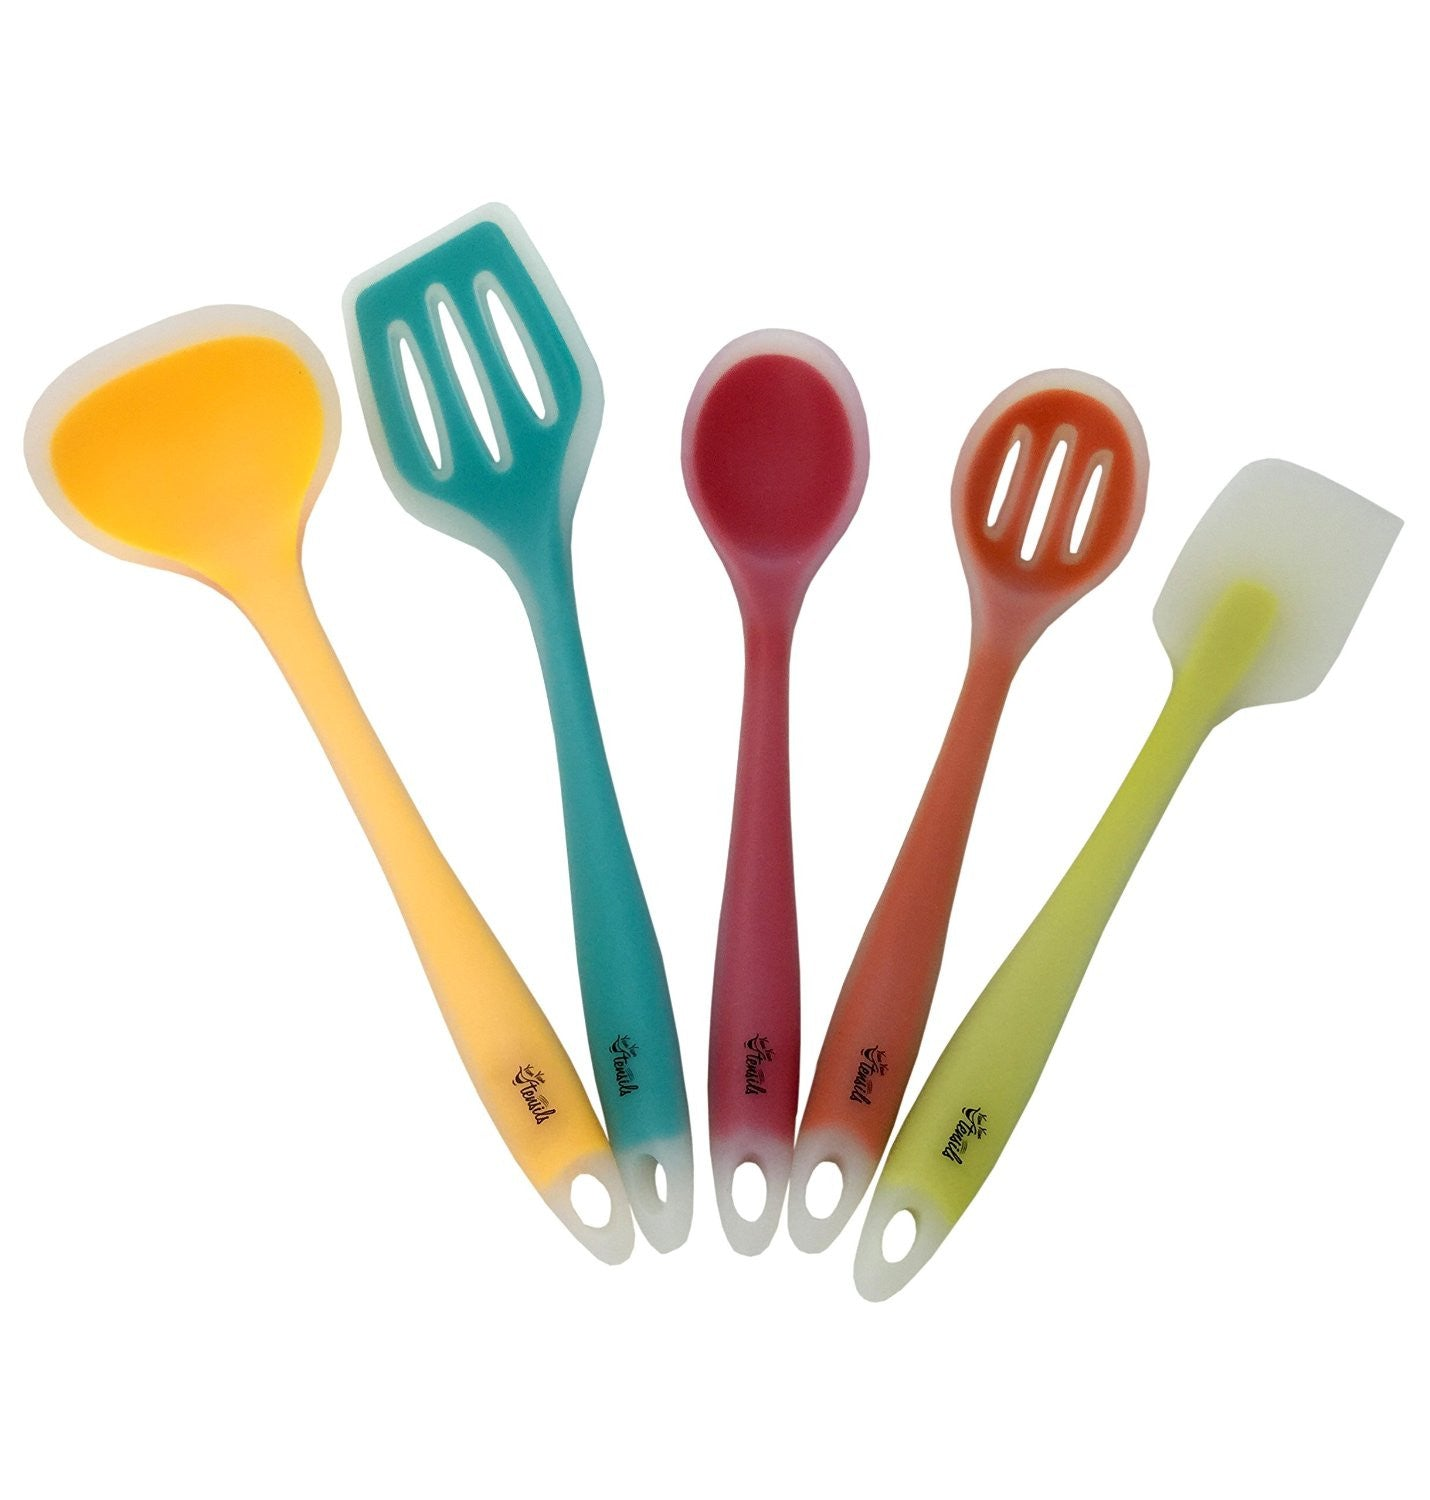 Silicone Cooking Utensils Set of 5 for the Kitchen, One-Piece Tools for  Long-Lasting Strength & Hygiene Safety, Colorful Core Utensil Pack, Heat ...